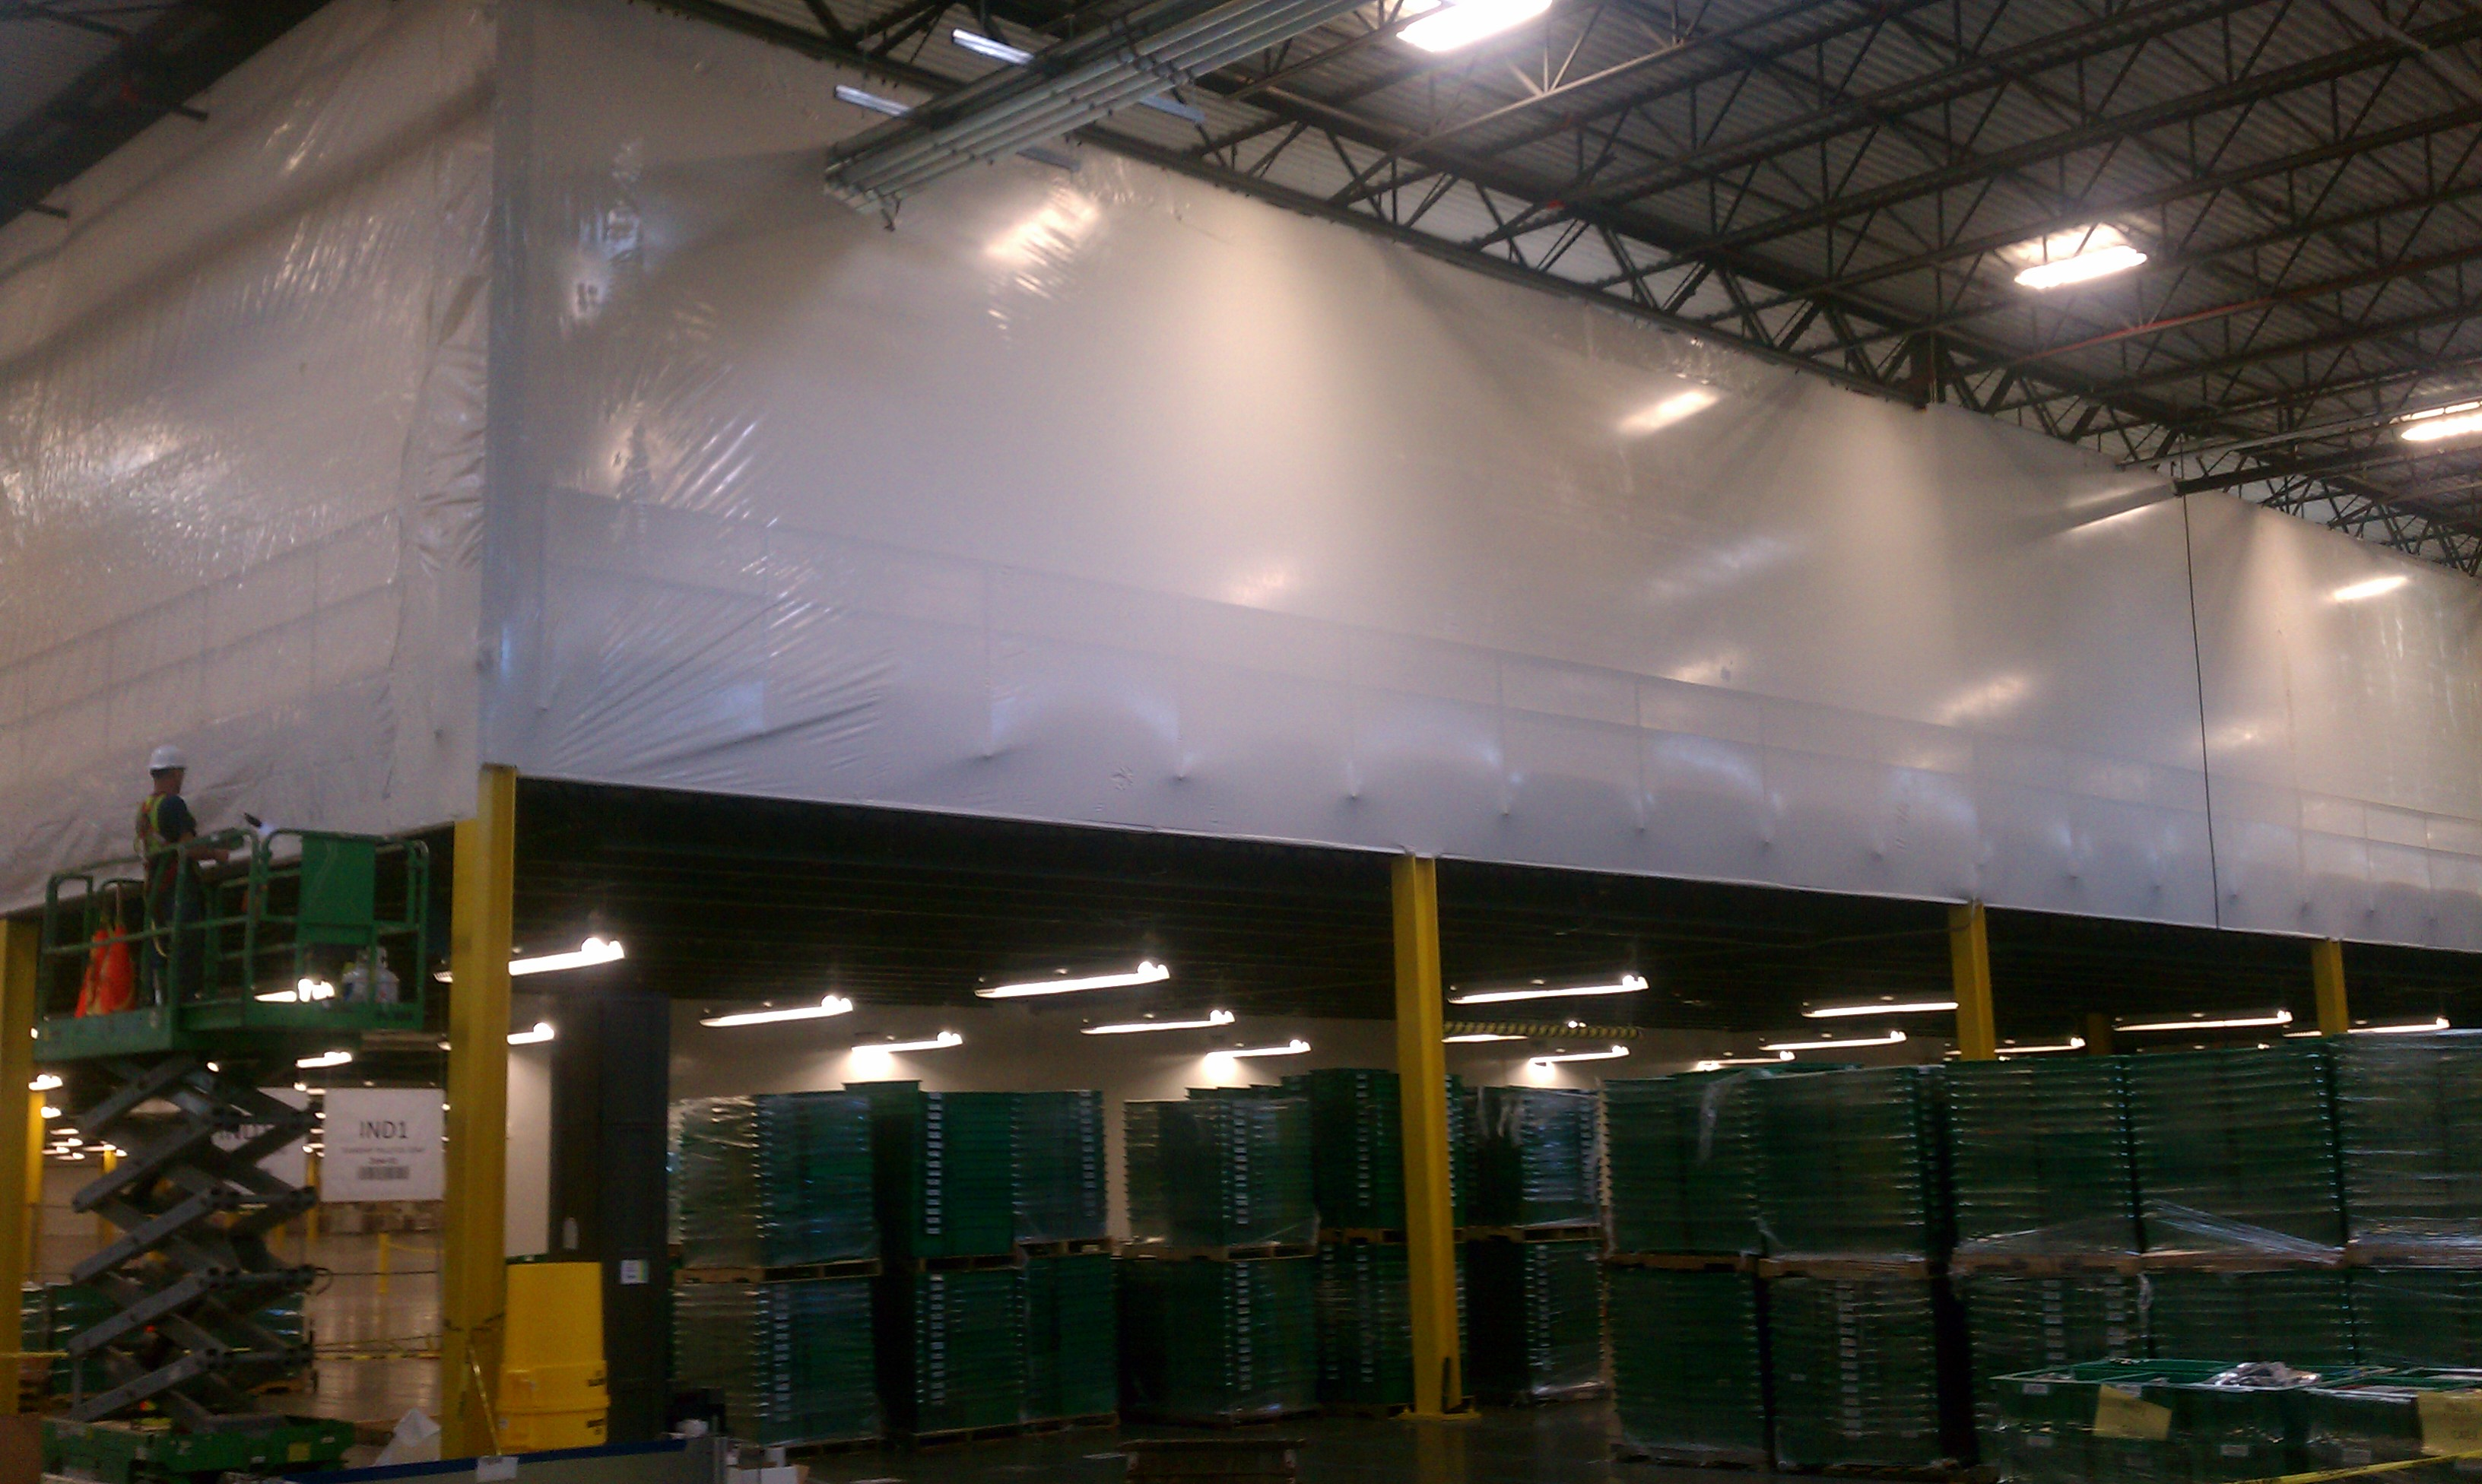 Construction shrink wrap images and shrink wrap containments for Construction interior dust control